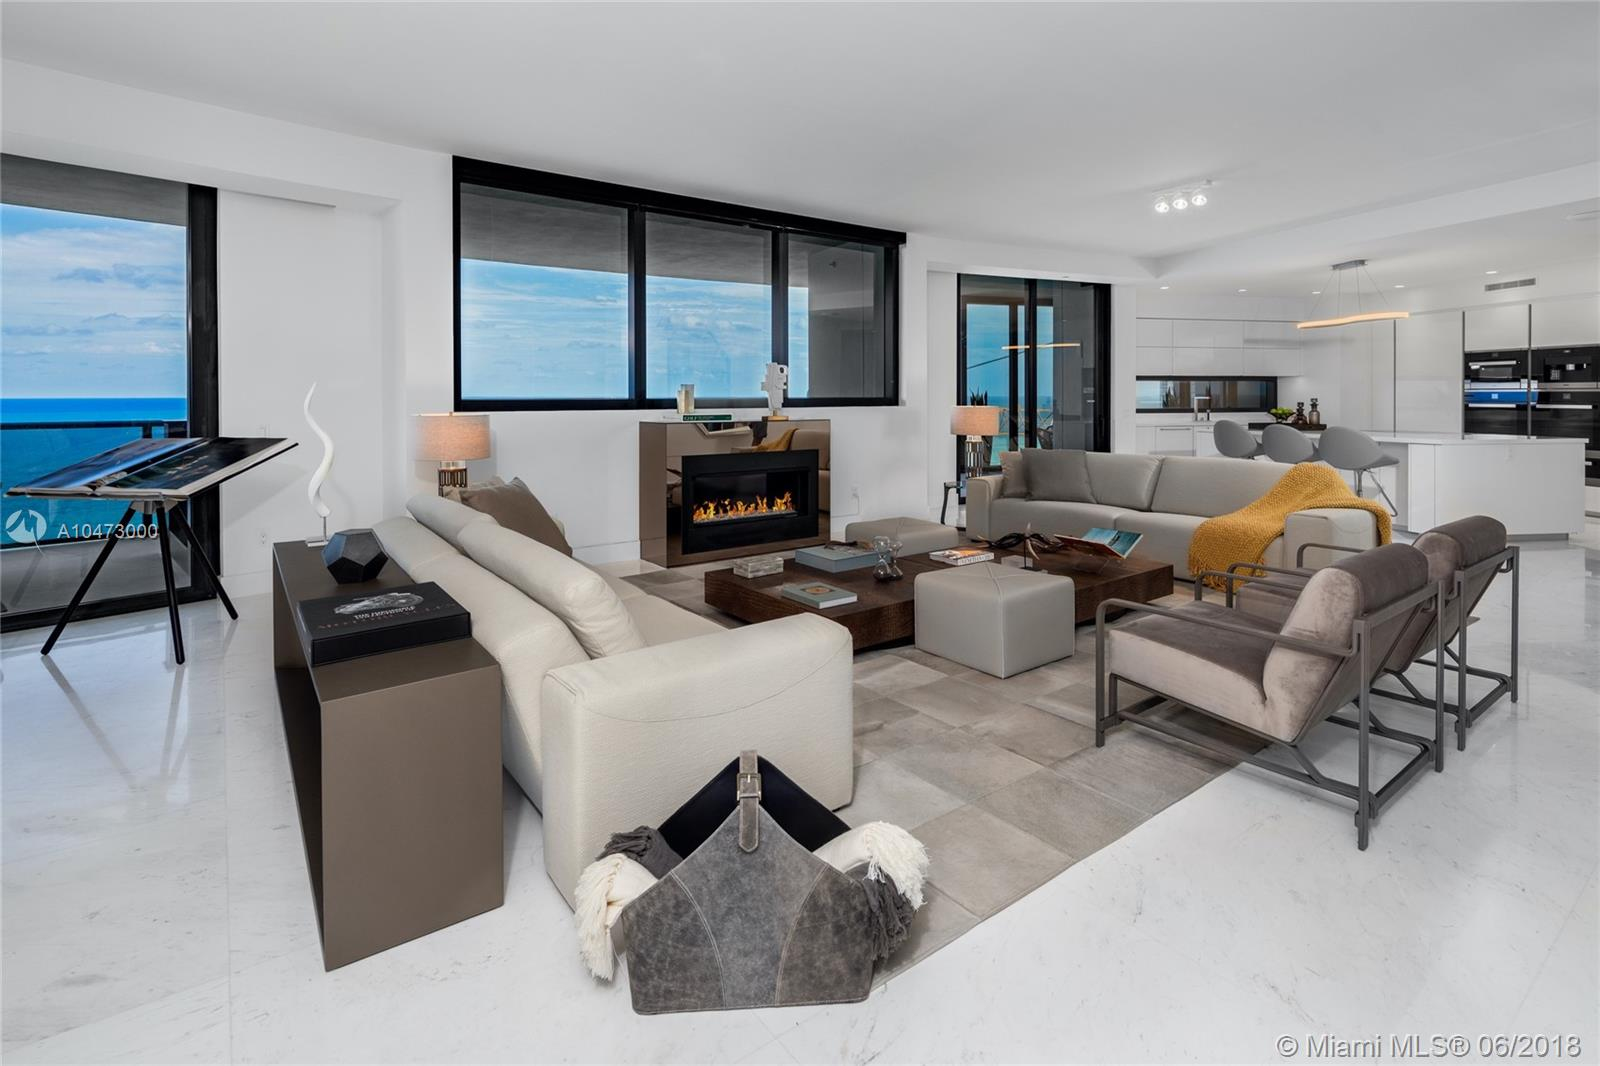 18555 Collins Ave, Unit #2101 Luxury Real Estate